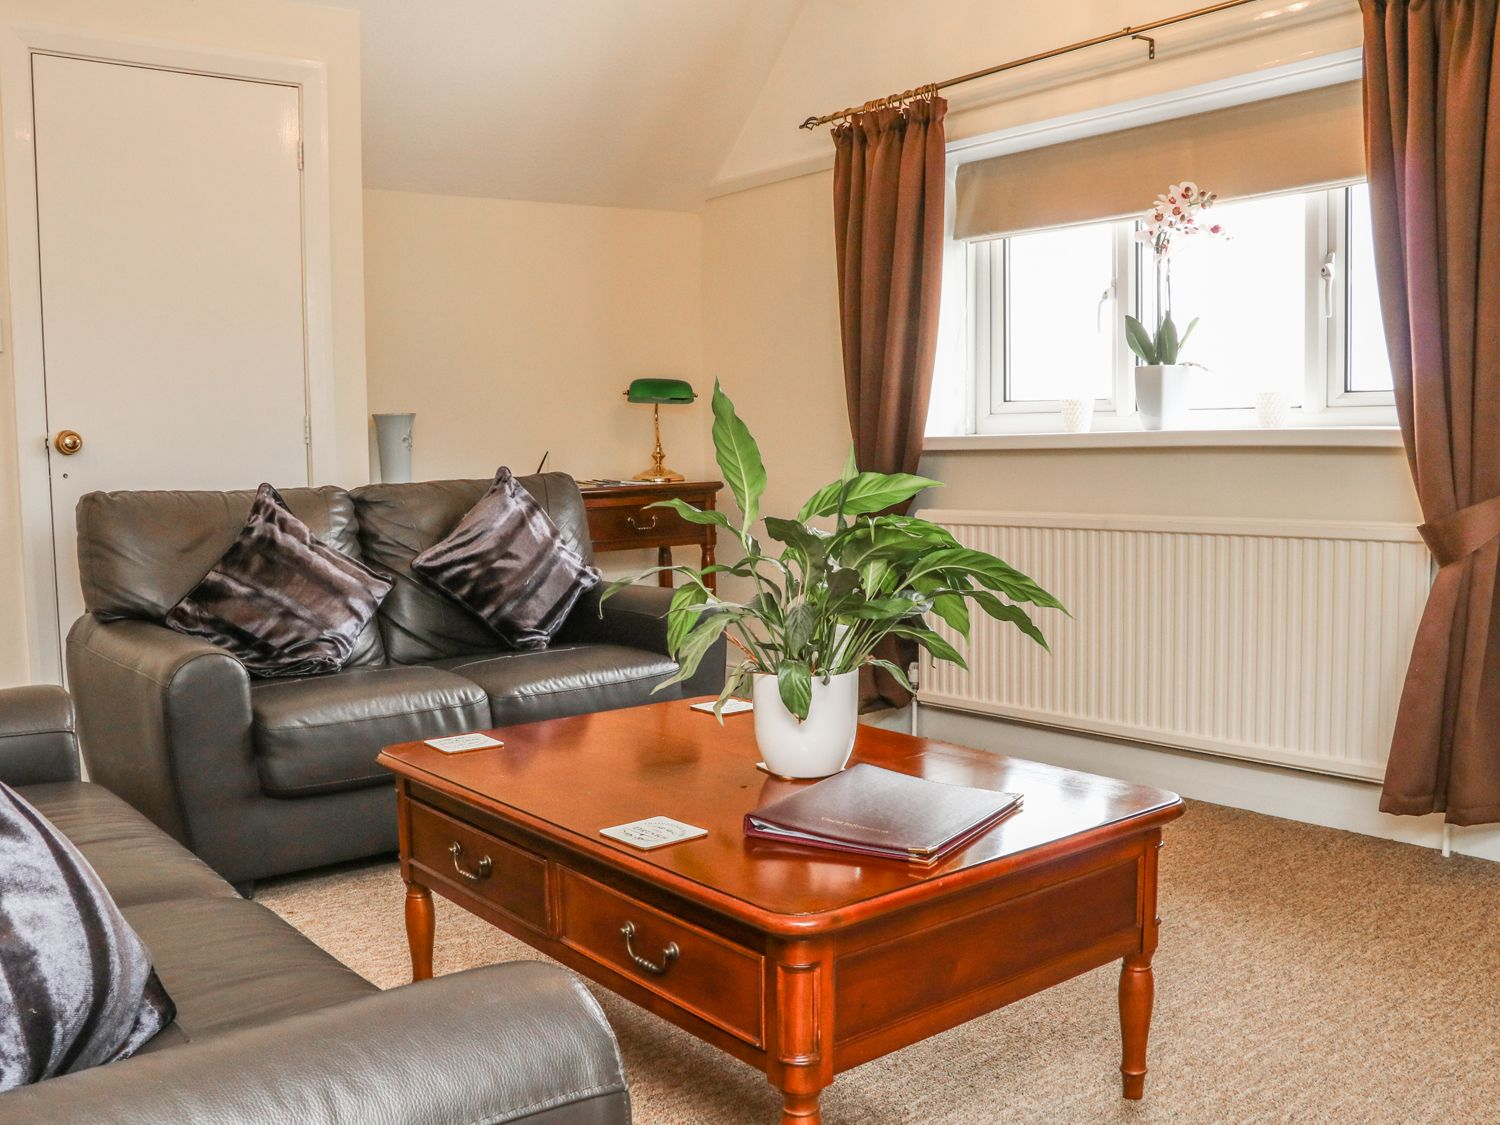 Penthouse in Minehead - sleeps 3 people